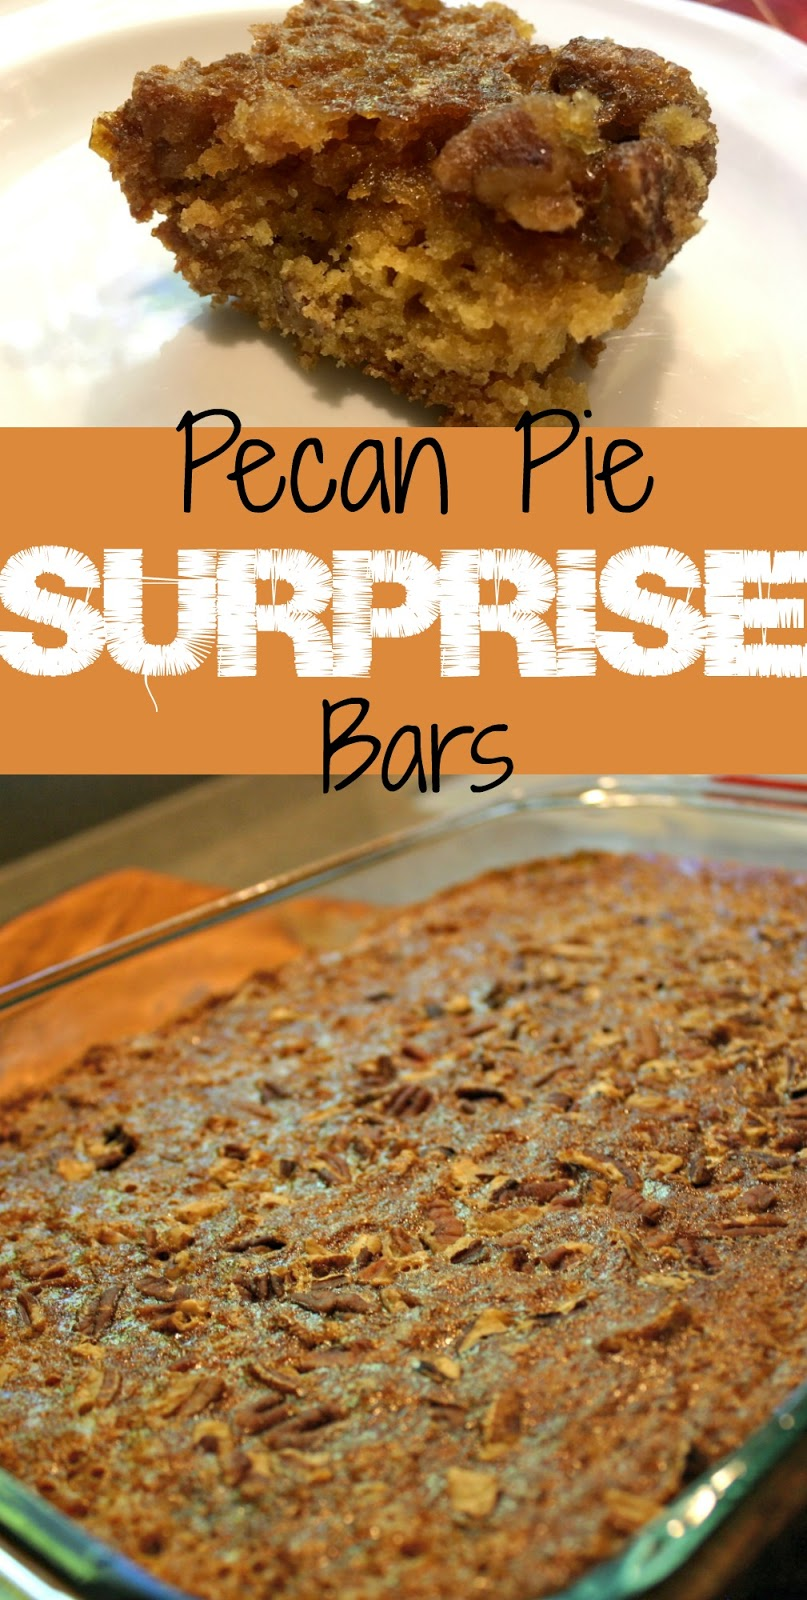 Allow the Pecan Pie Surprise Bars to cool and then cut them into bars.